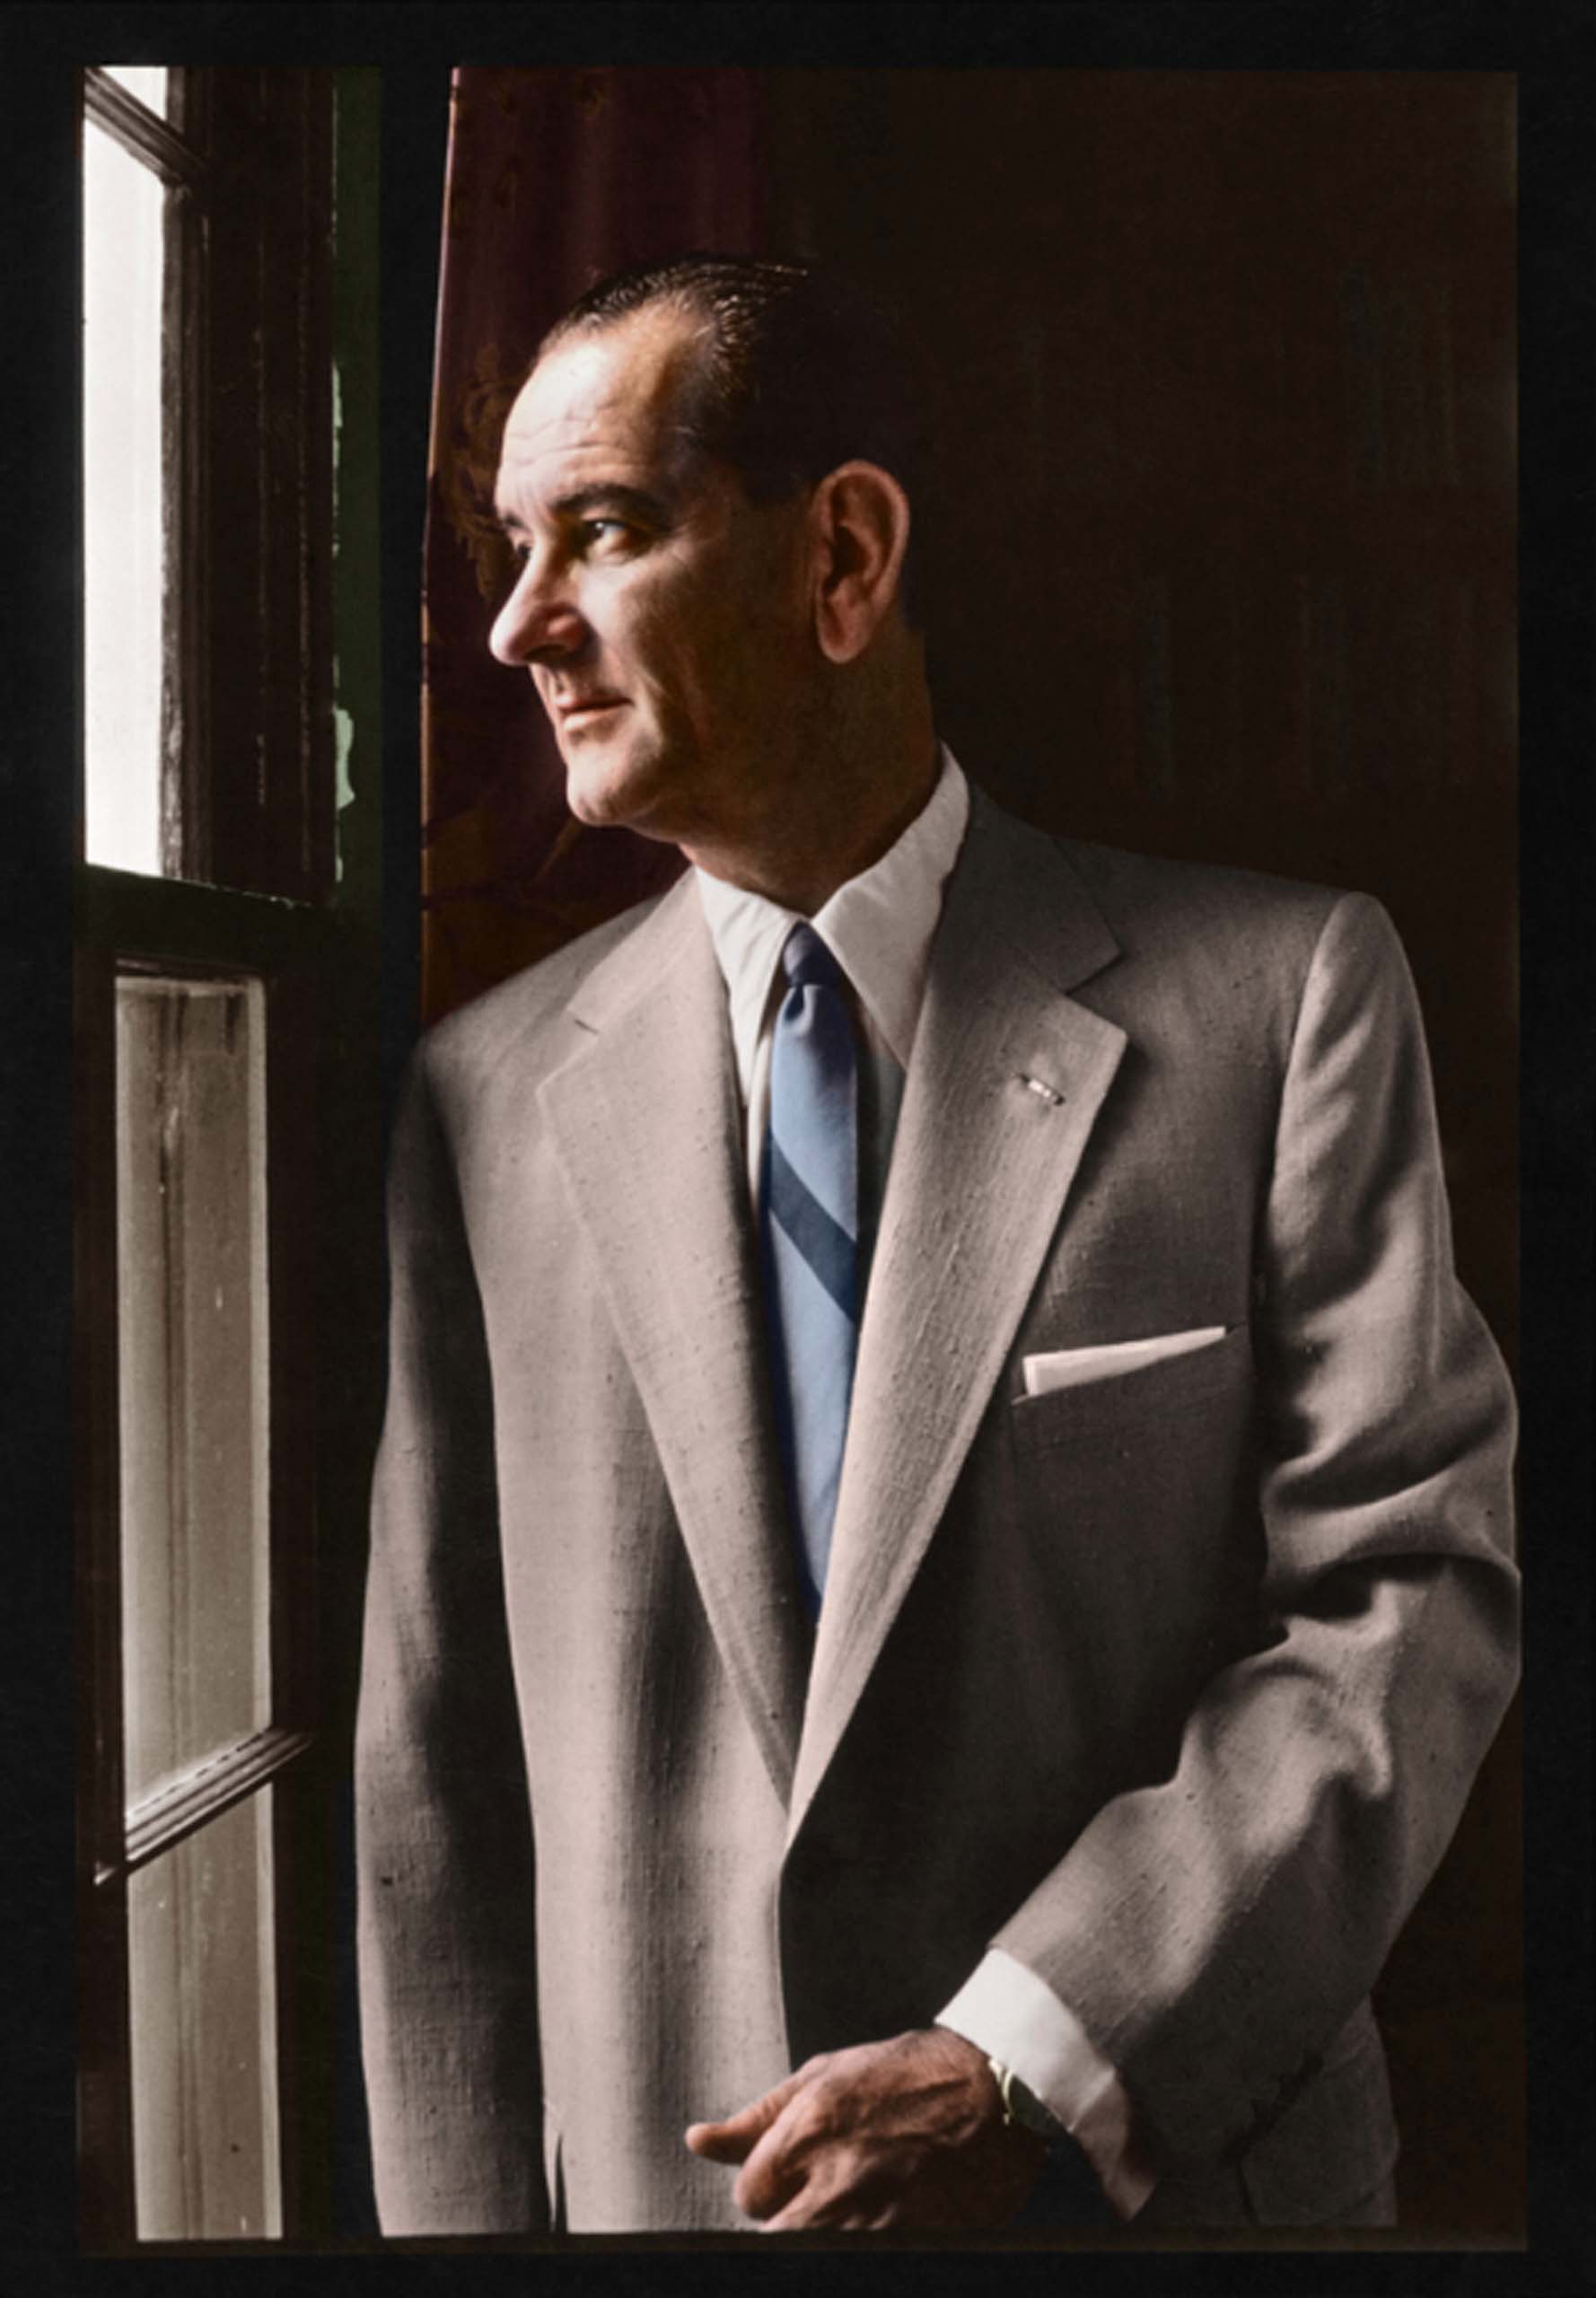 September, 1955. Lyndon B. Johnson, half length portrait, left profile, looking out a window.                                   <i>Ranked #16 in SRI Survey of U.S. Presidents, Johnson is rated #1 for his 'Relationship with Congress' but falls in last place for his 'Foreign Policy Accomplishments.'</i>